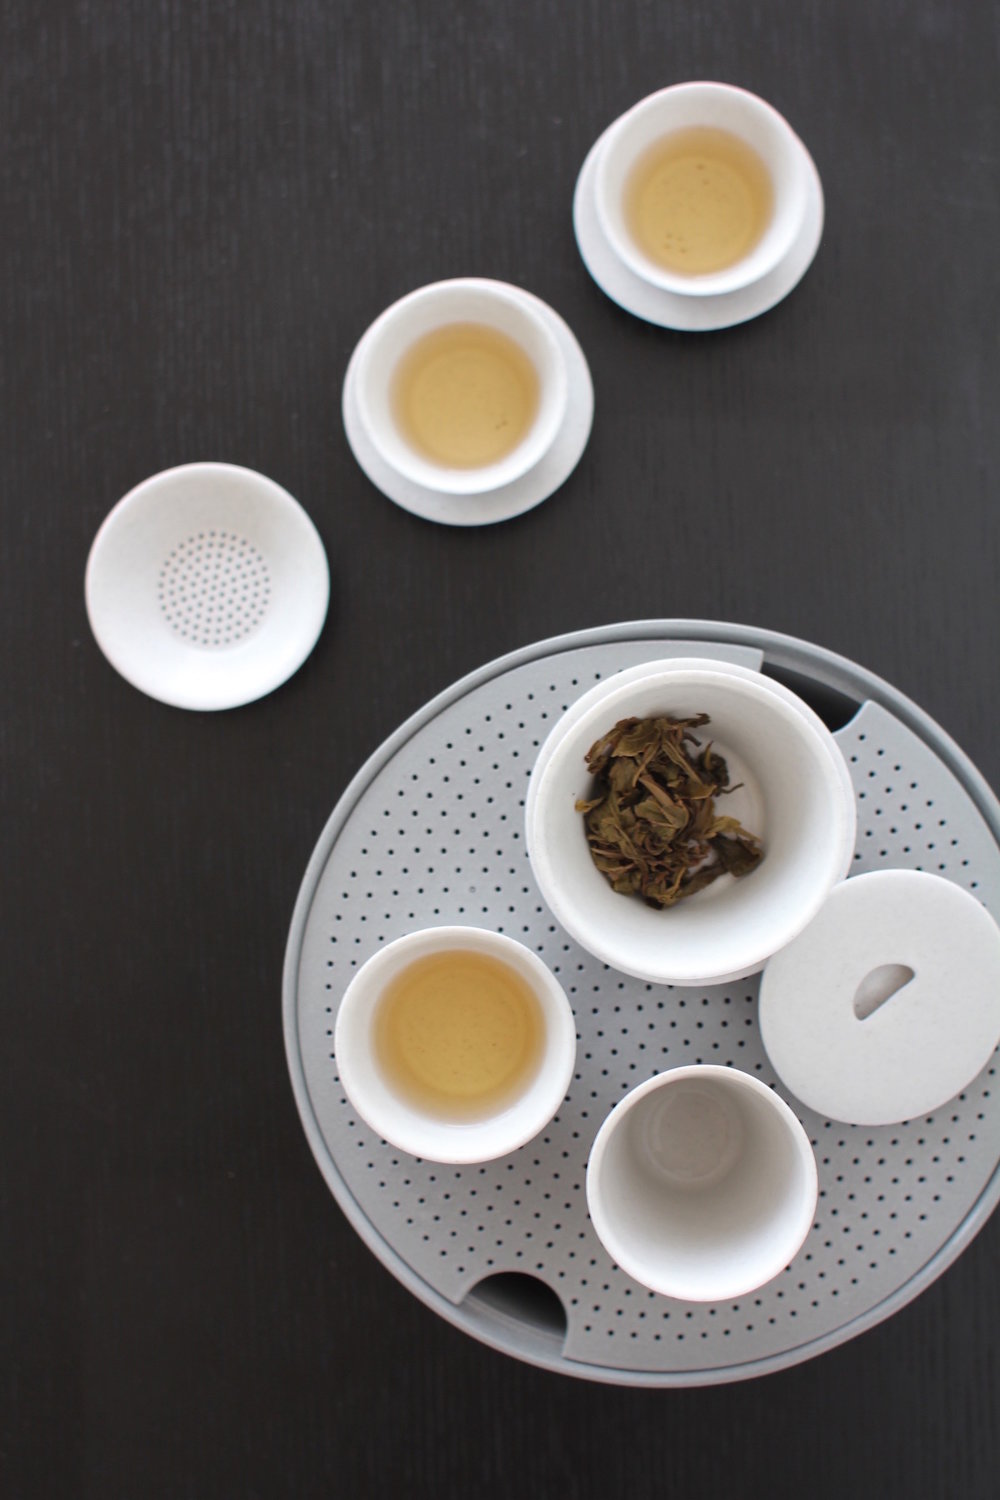 chinese tea set1.jpg